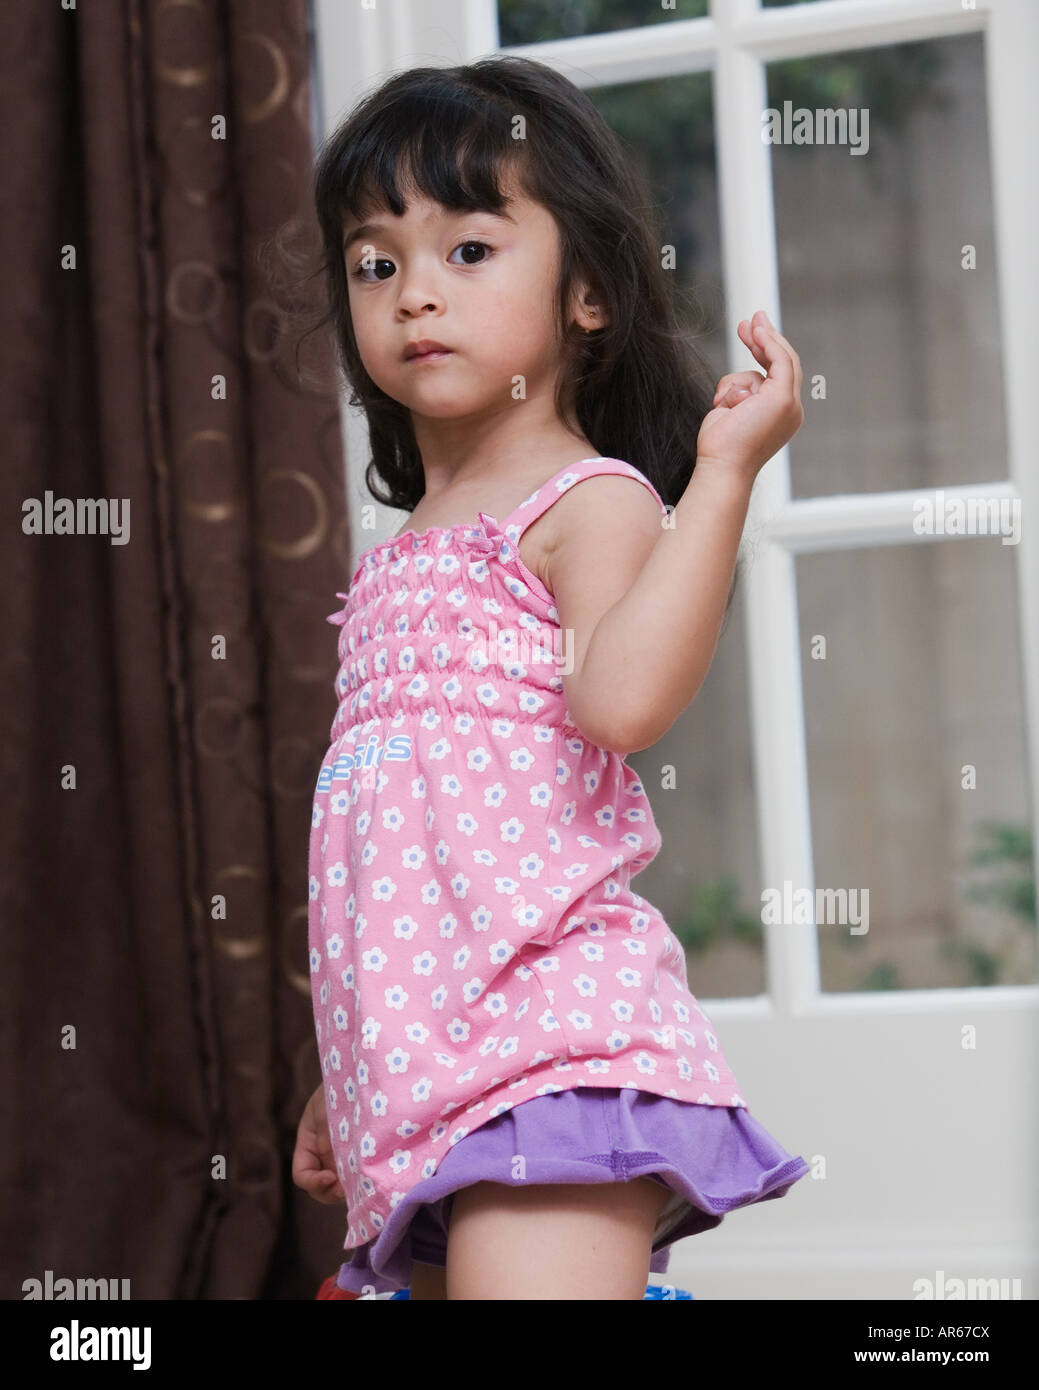 Little girl in pink - Stock Image